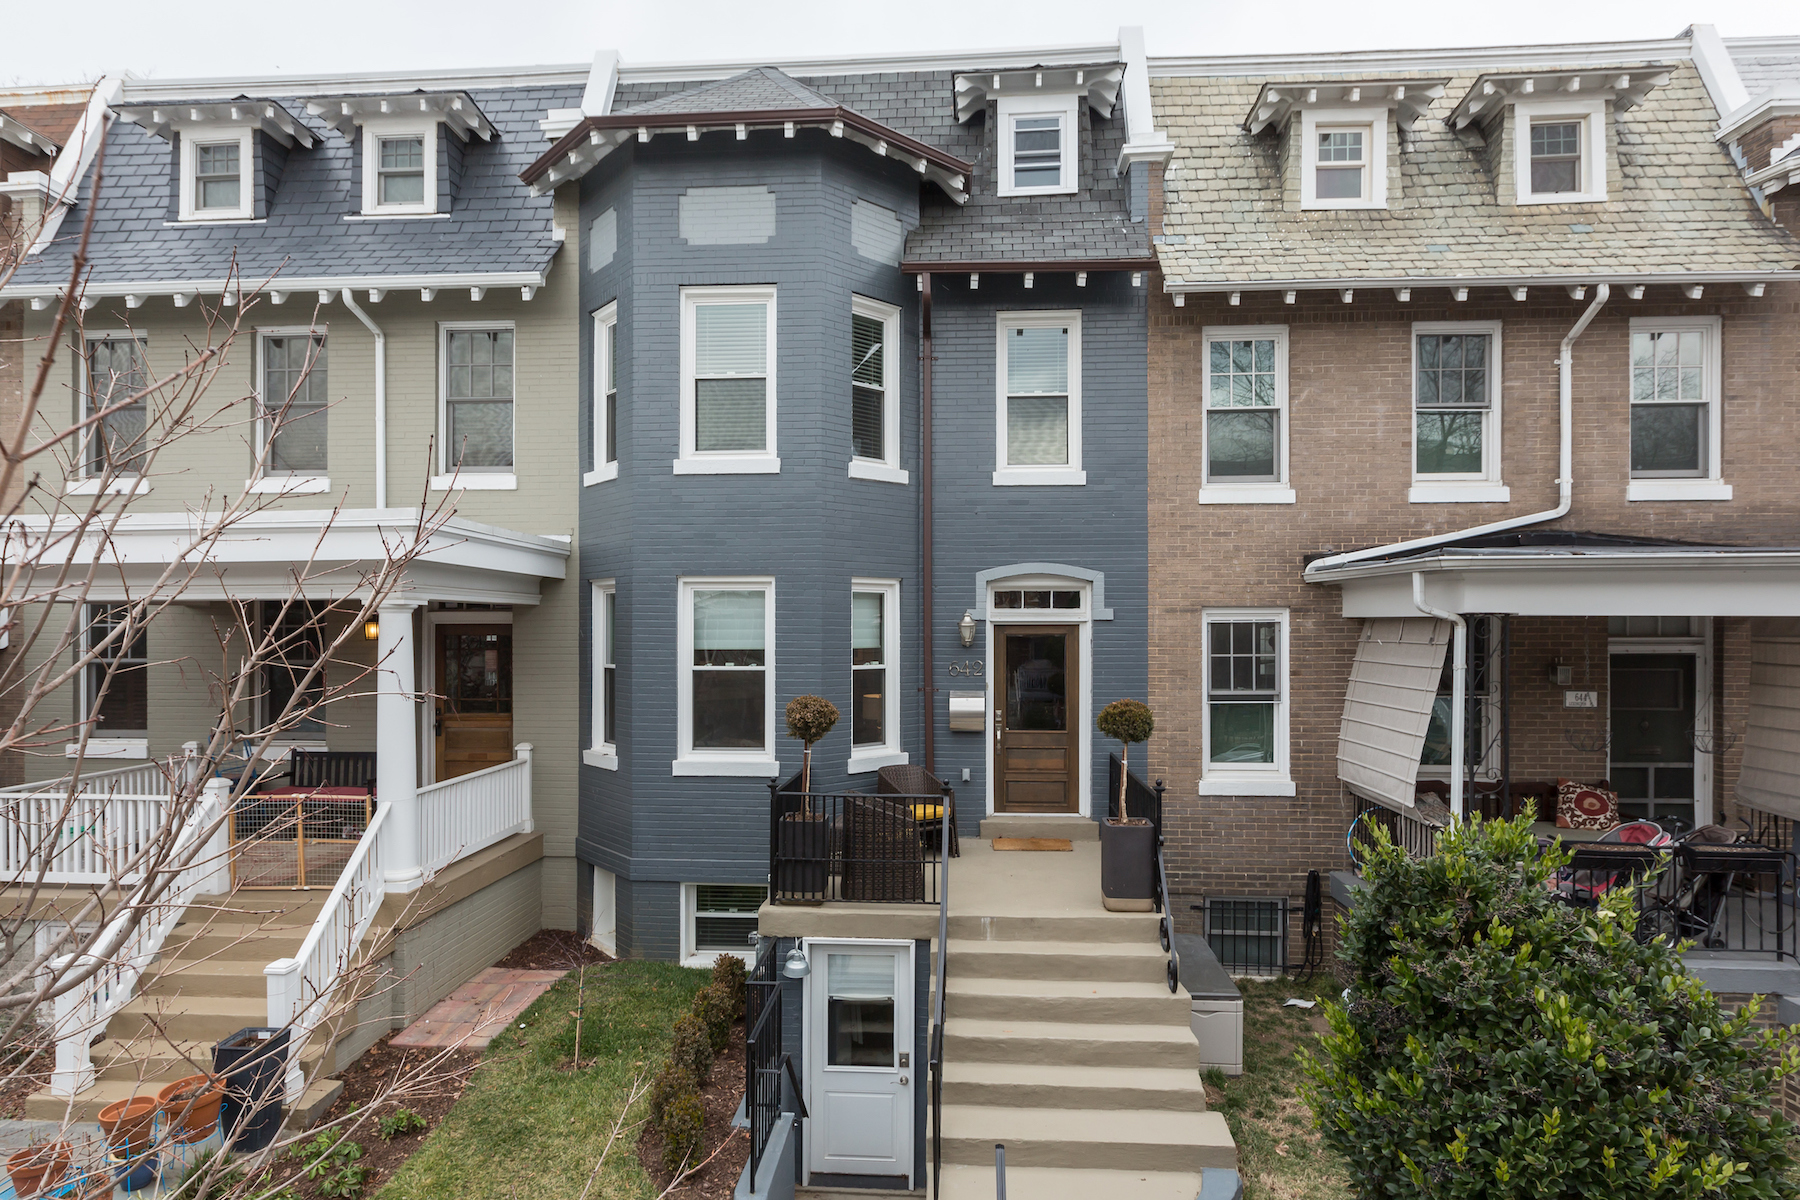 Townhouse for Sale at Capitol Hill 642 Lexington Place NE Capitol Hill, Washington, District Of Columbia, 20002 United States